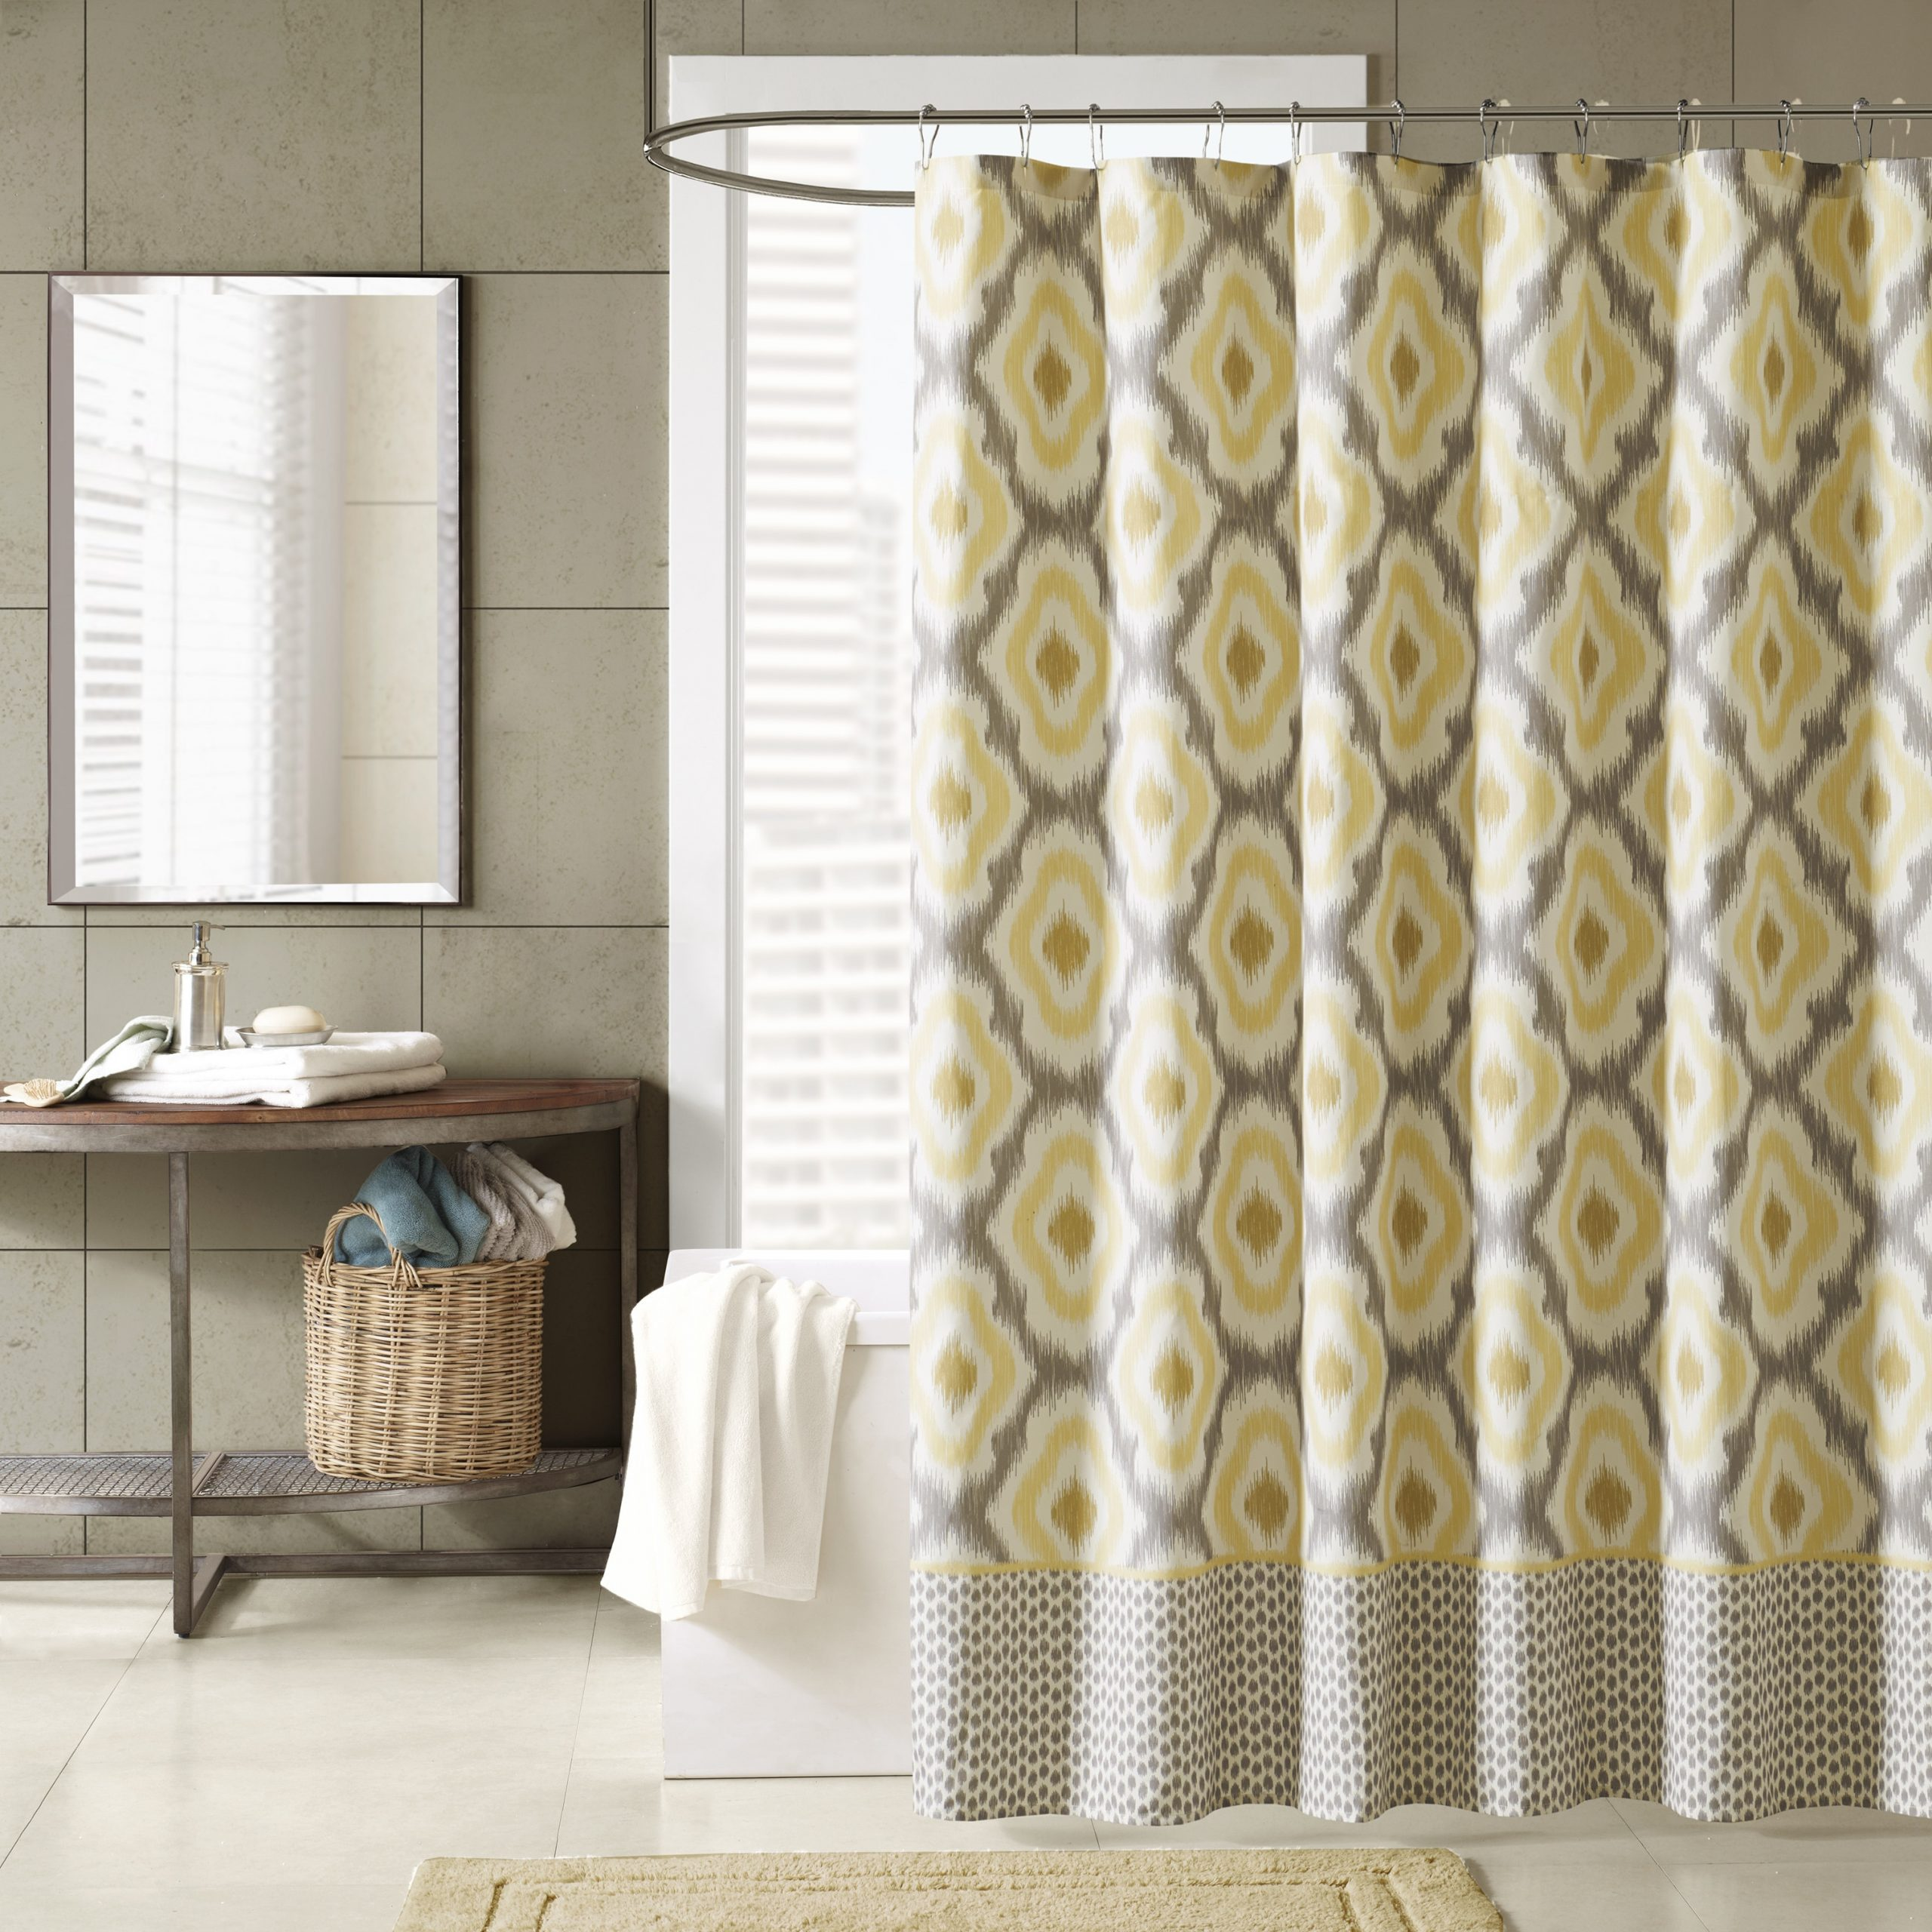 Ink Ivy Ankara Cotton Printed Single Curtain Panels Throughout 2021 Ink+ivy Ankara Cotton Printed Shower Curtain In Yellow (View 11 of 22)